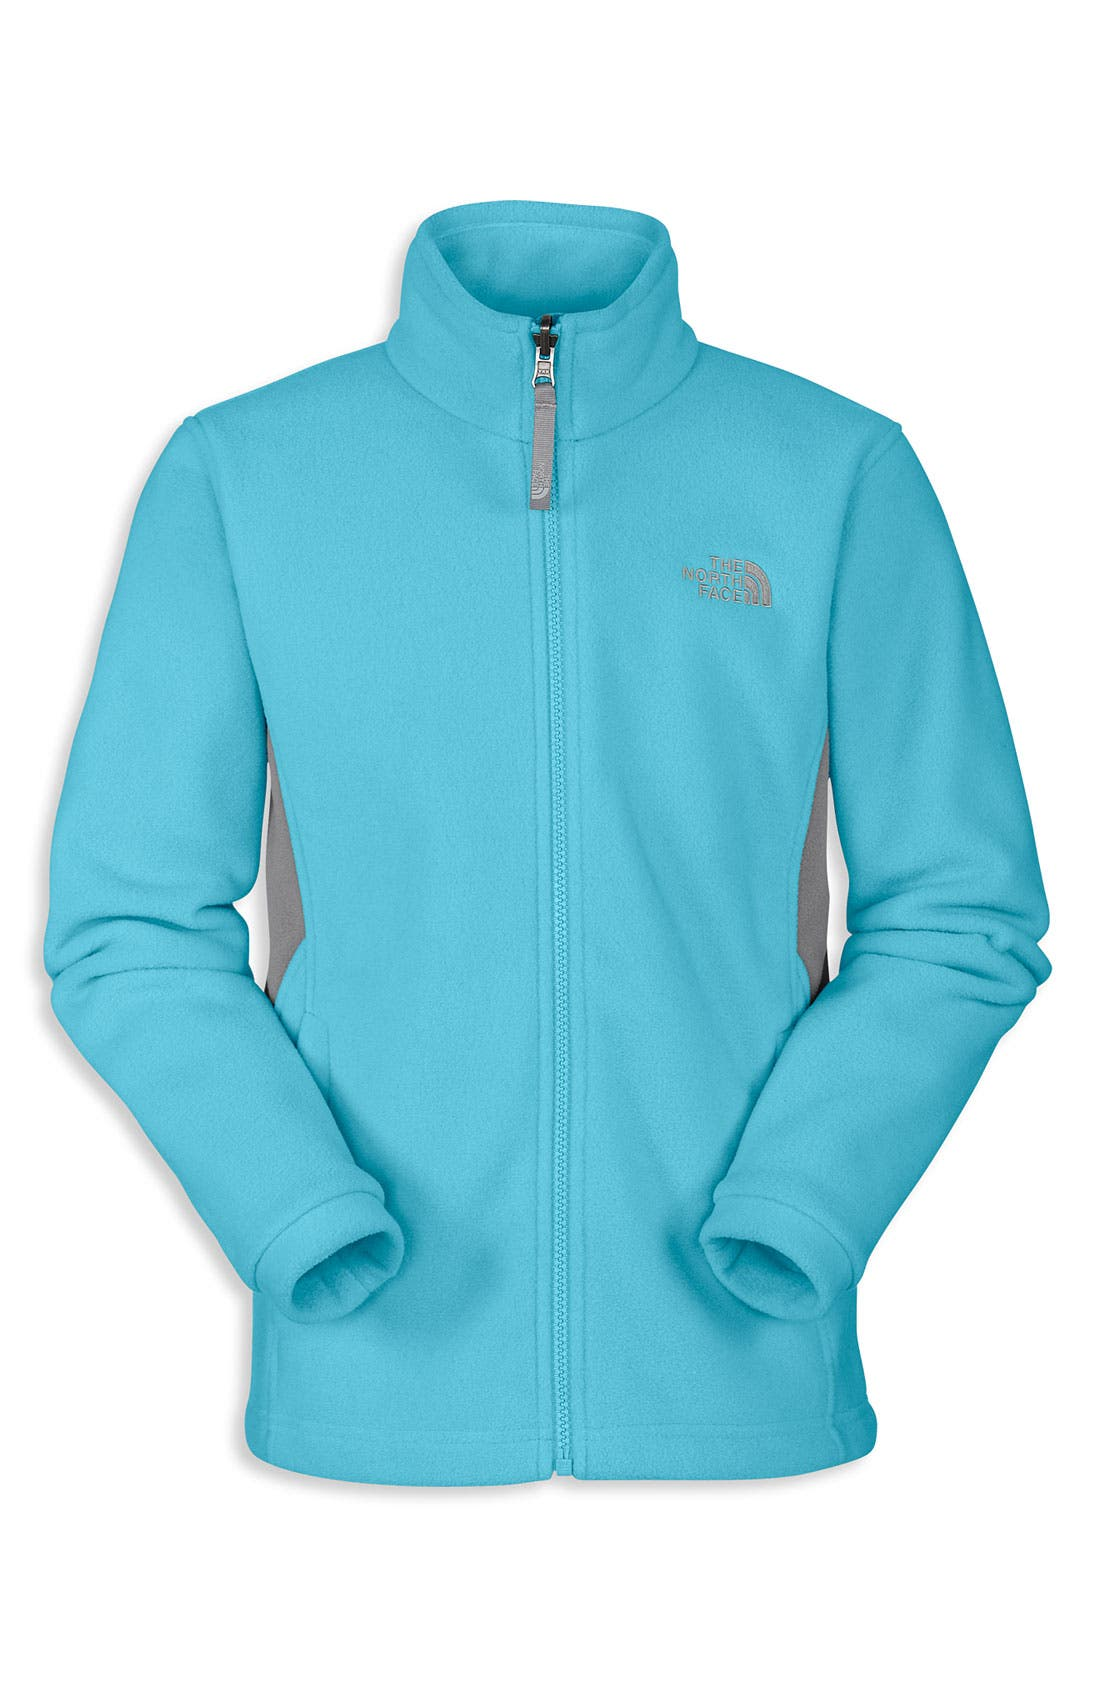 Main Image - The North Face 'Khumbu' Fleece Jacket (Big Girls)